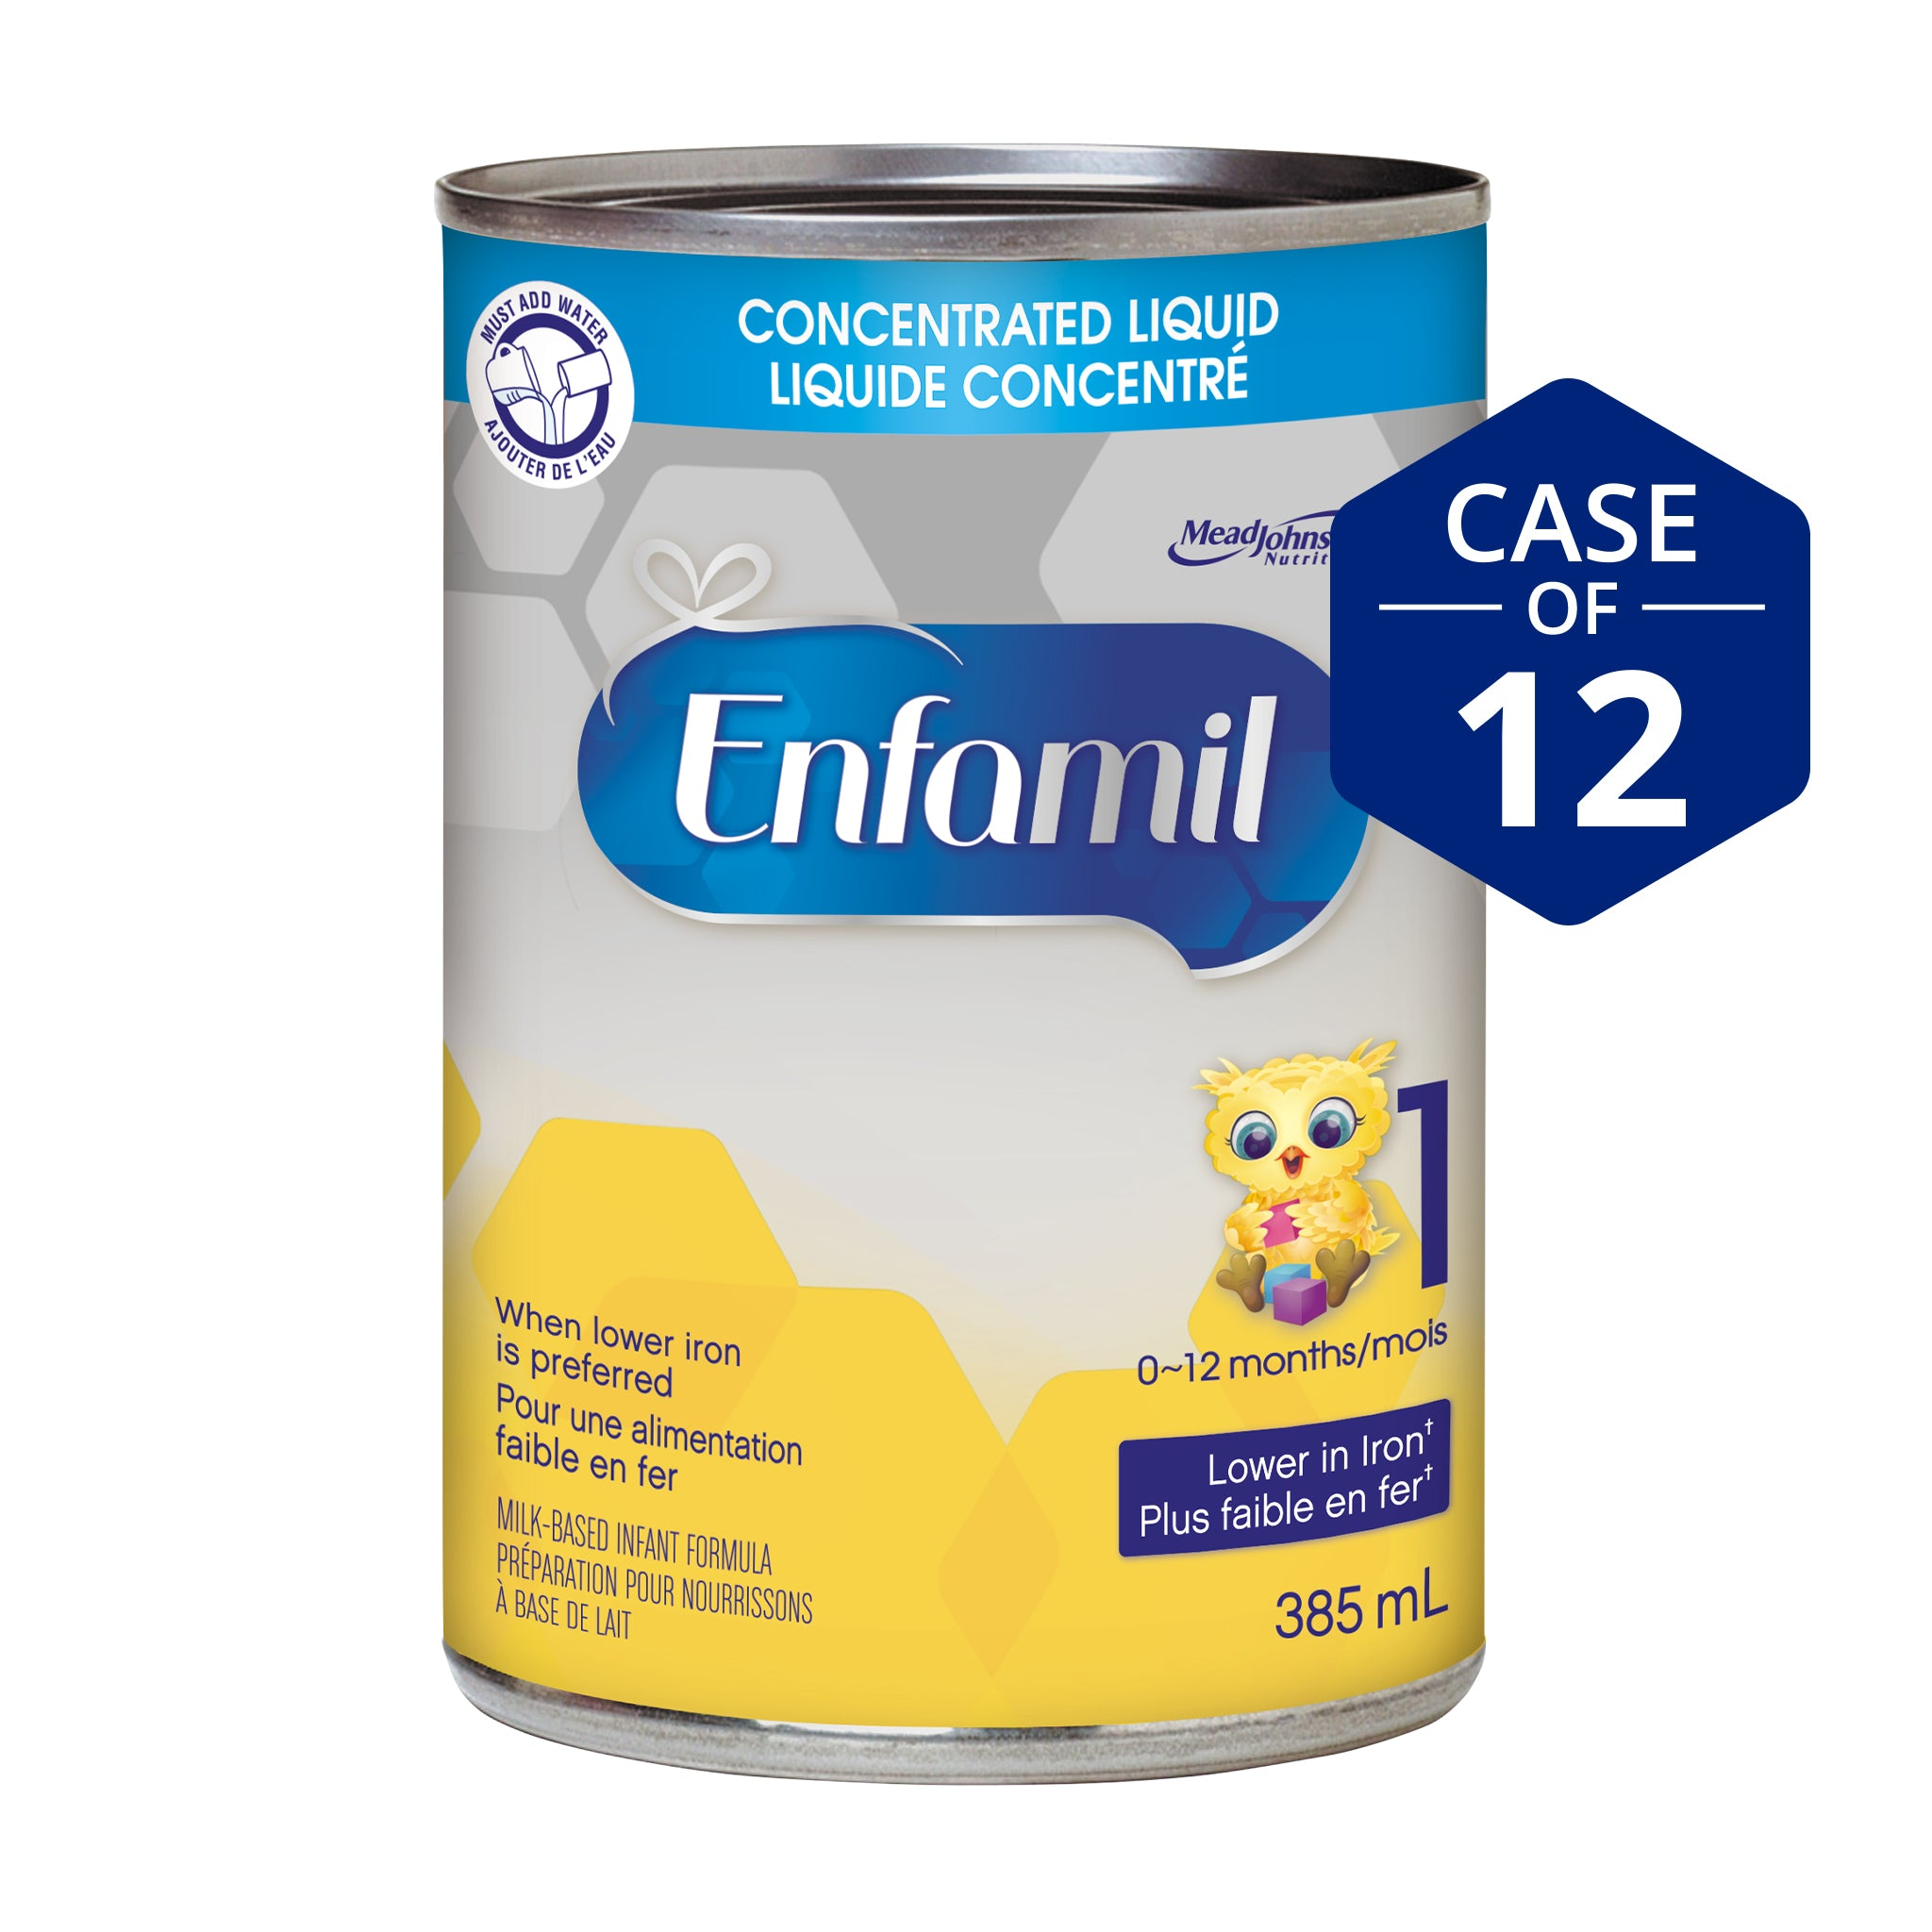 Enfamil® Lower Iron Infant Formula, Concentrated Liquid, 385mL, 12 cans